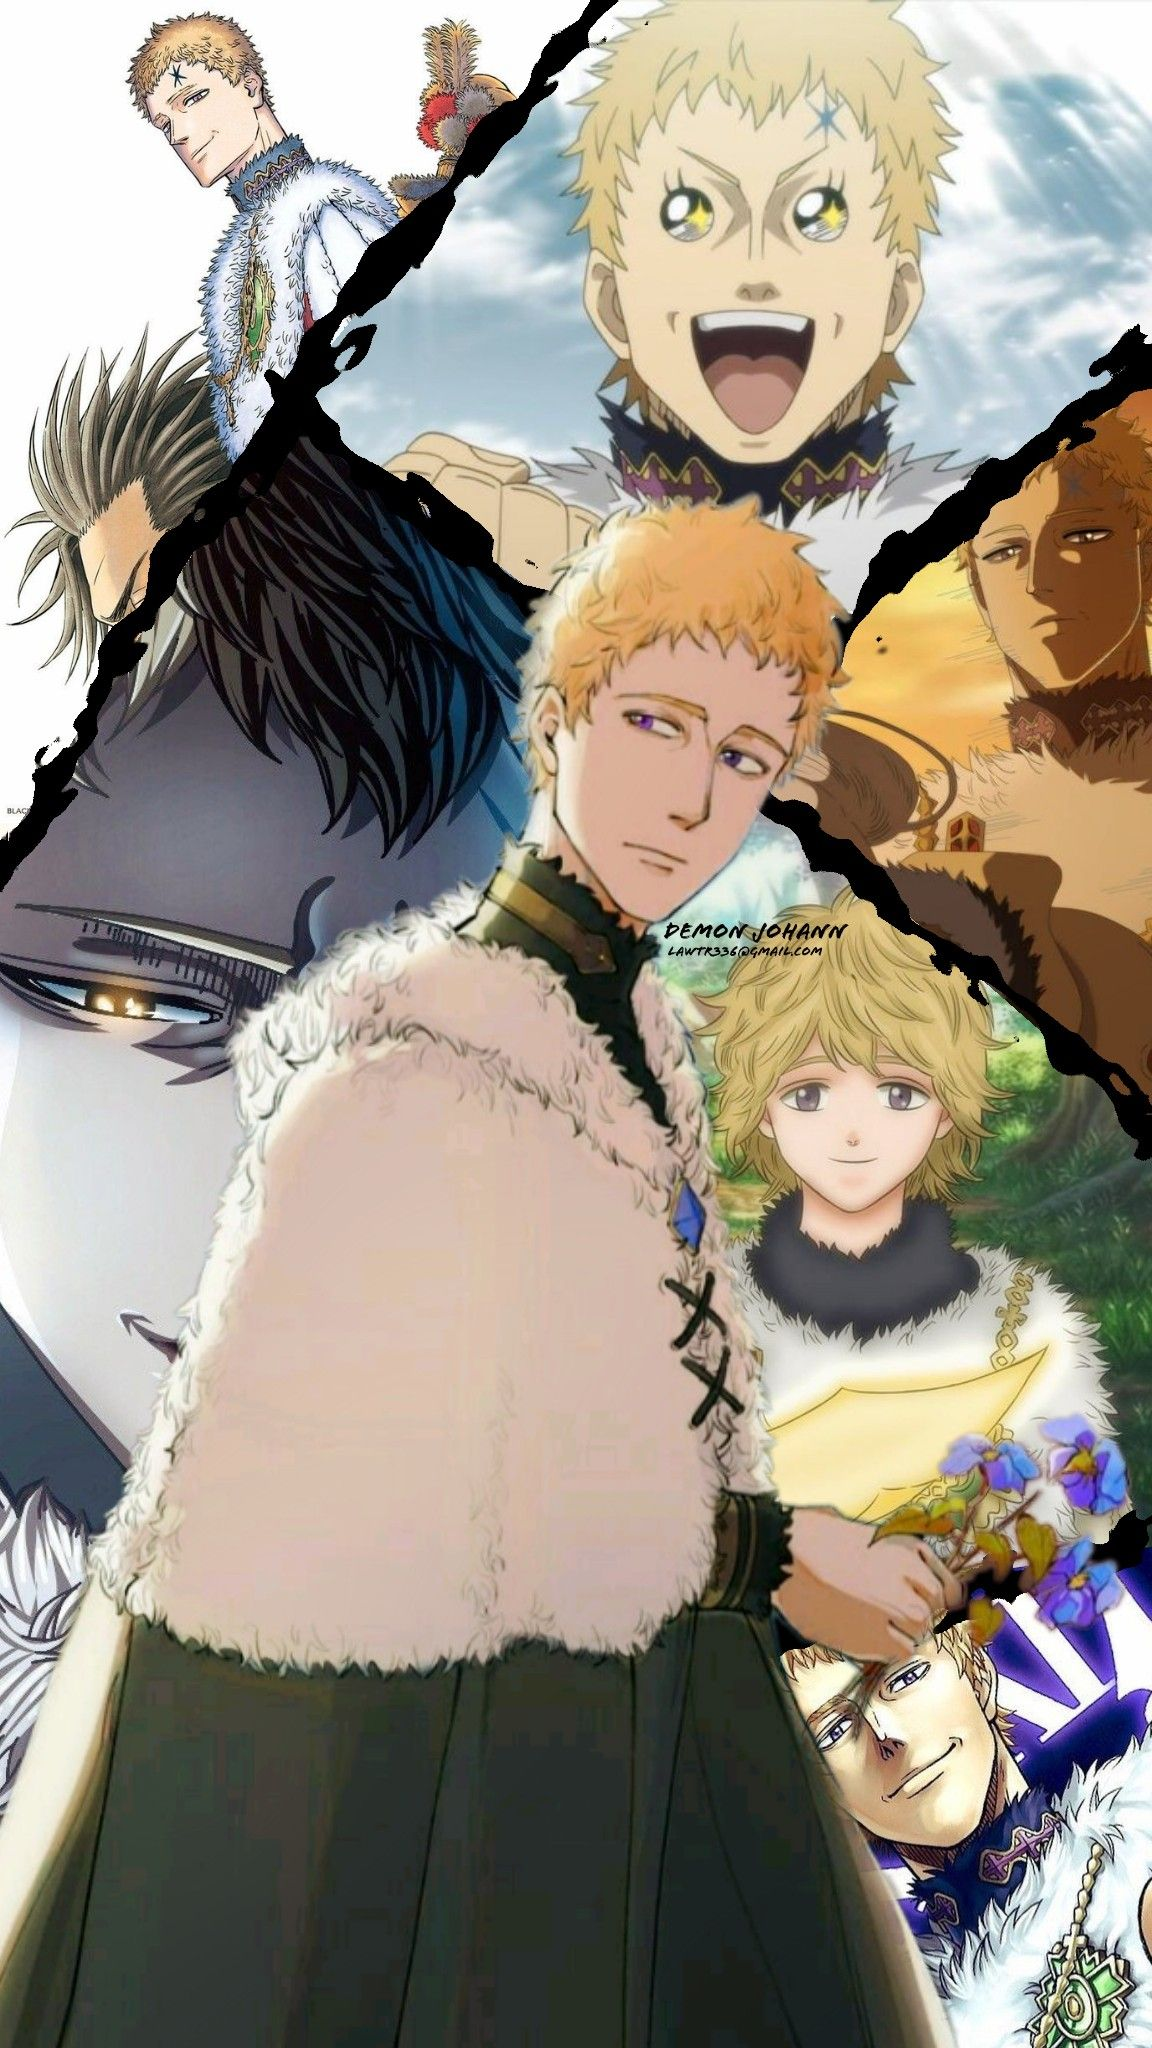 Black Clover Anime Thenightanime Com Vozeli Com I want to see more of him. vozeli com